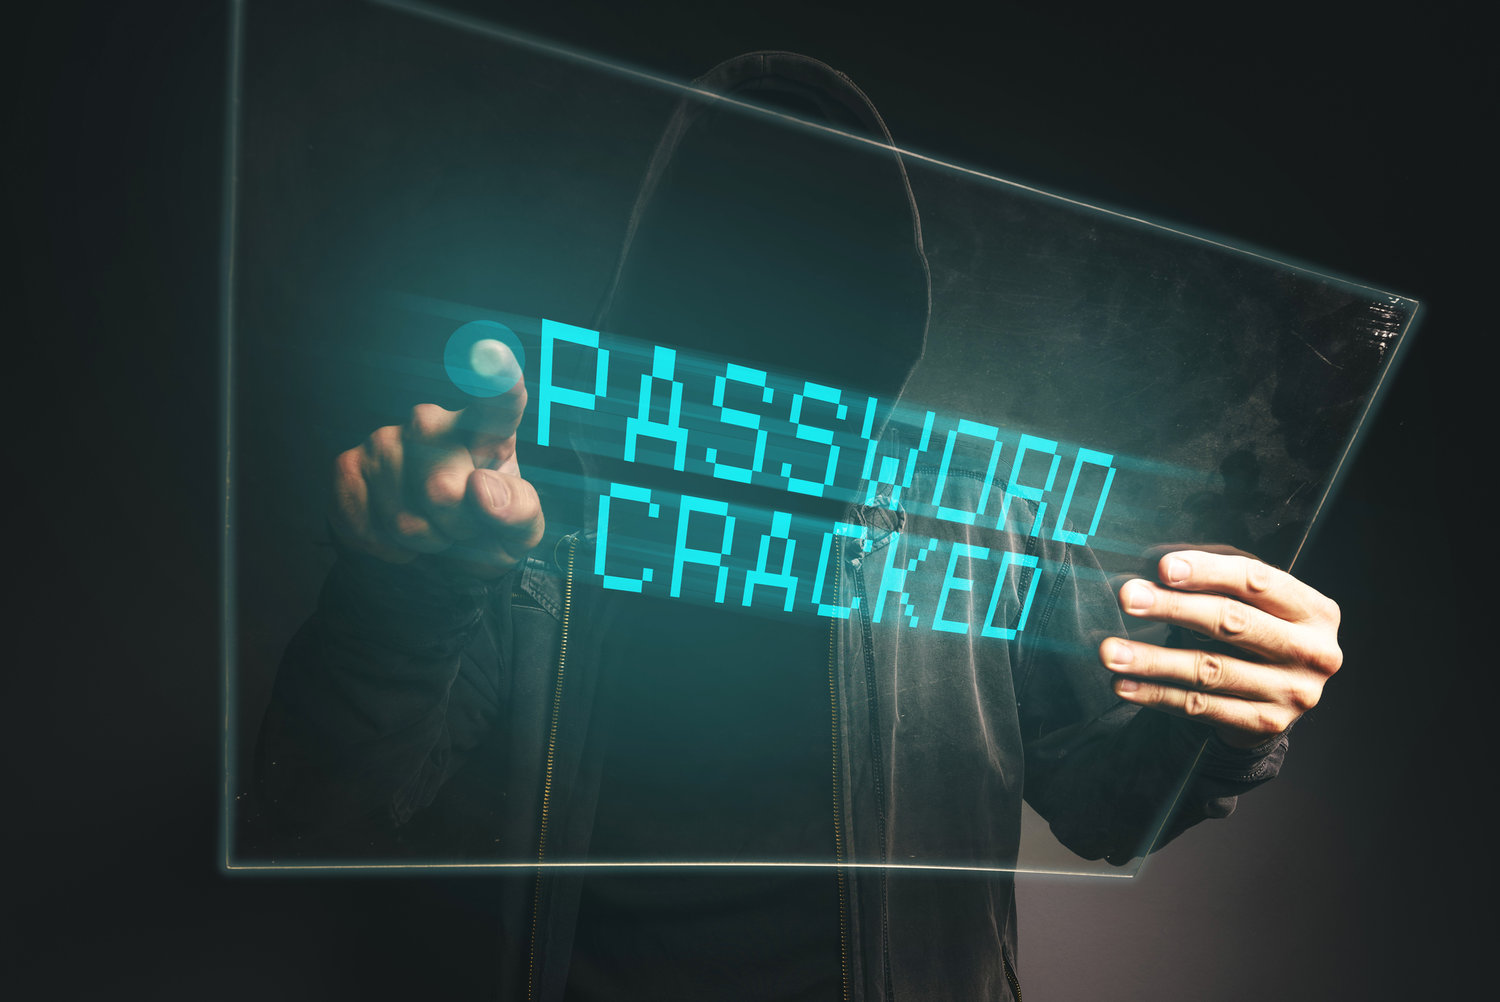 online password dictionary attack